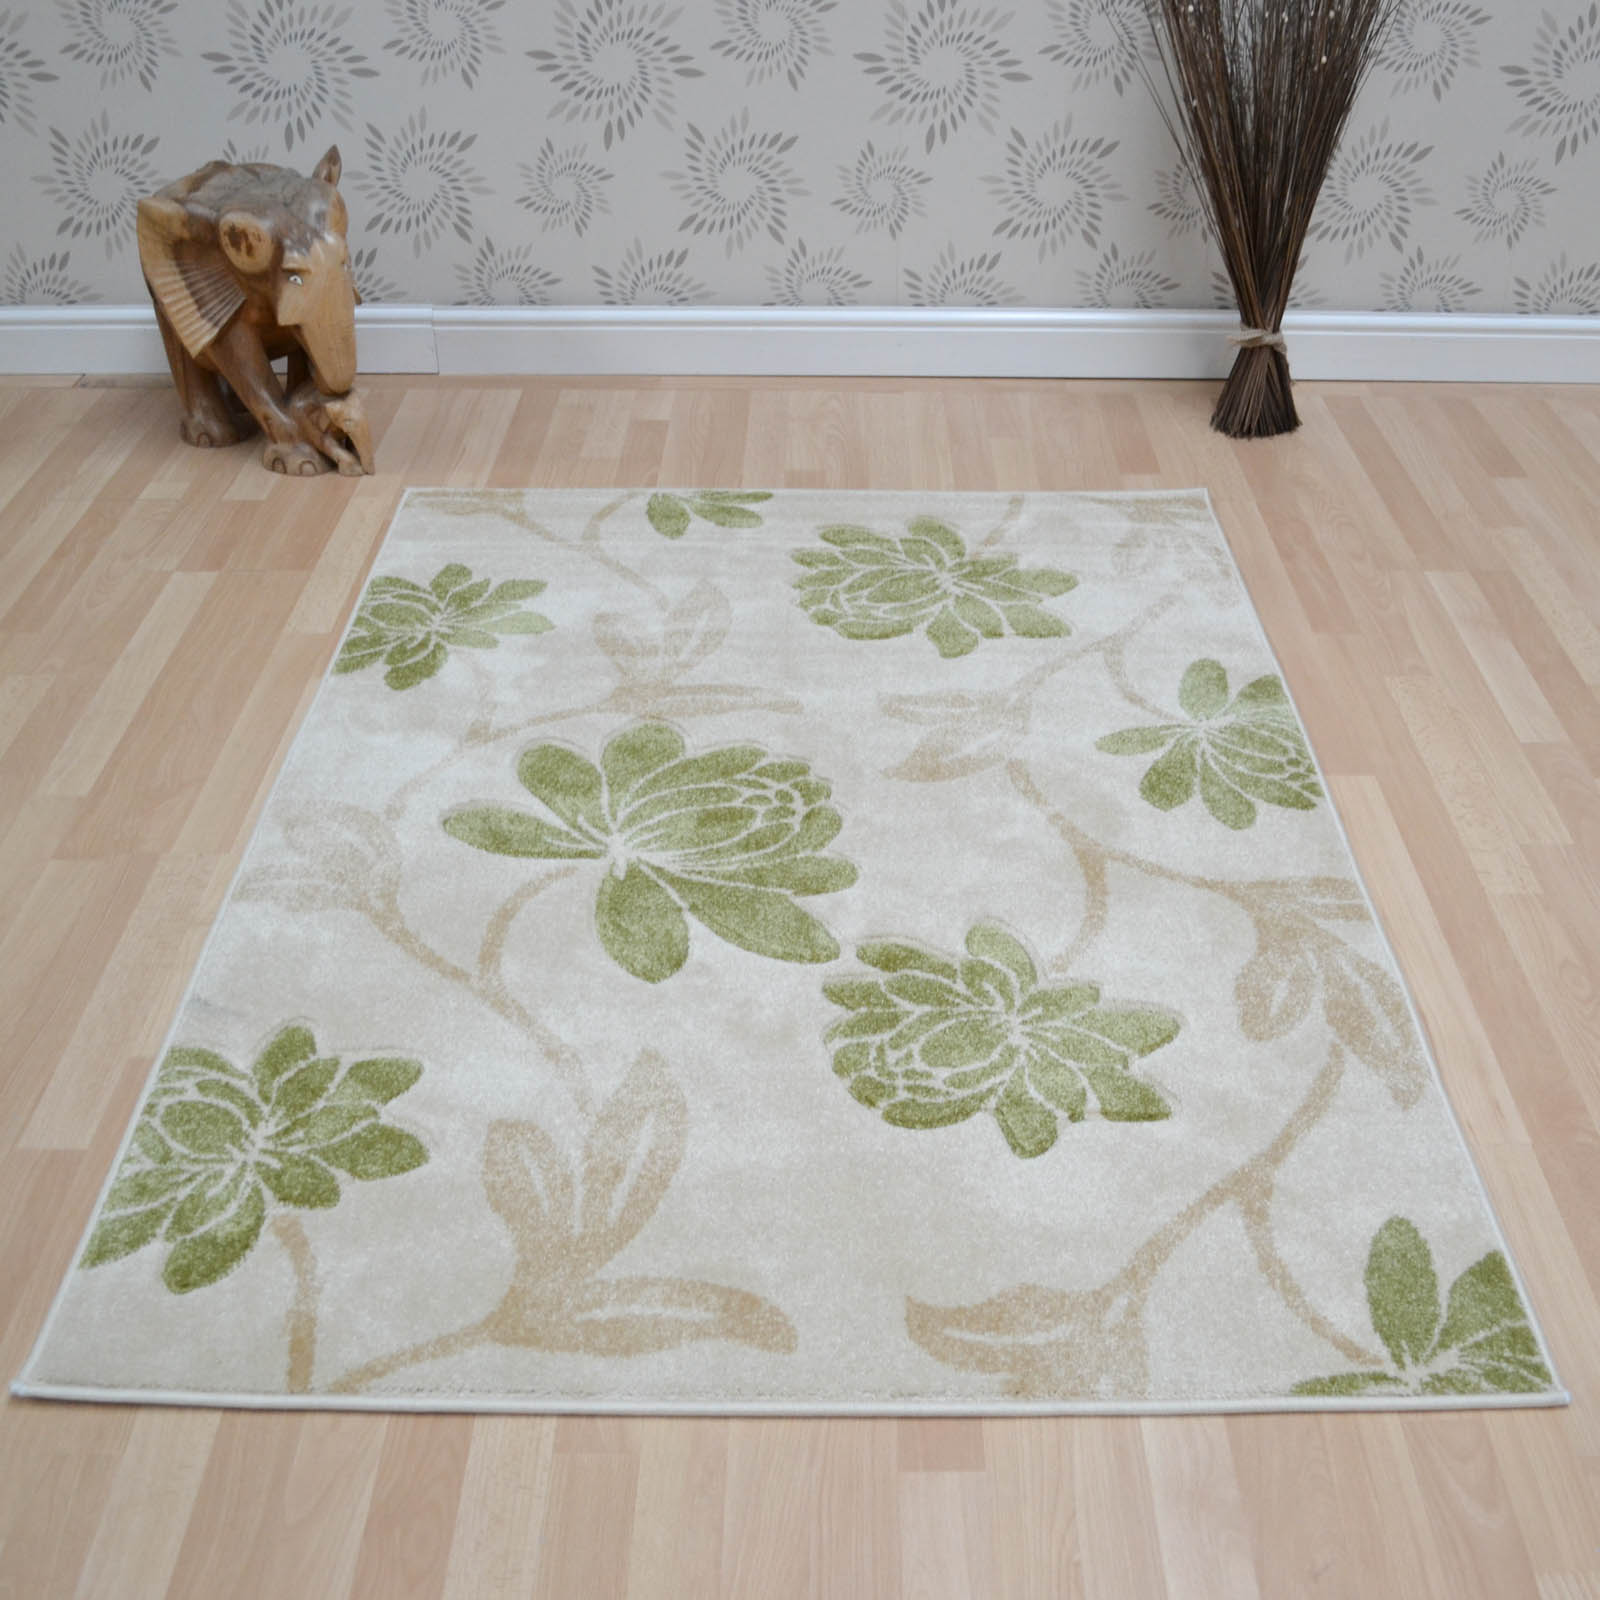 Vogue Floral Rugs VG42 in Cream and Green